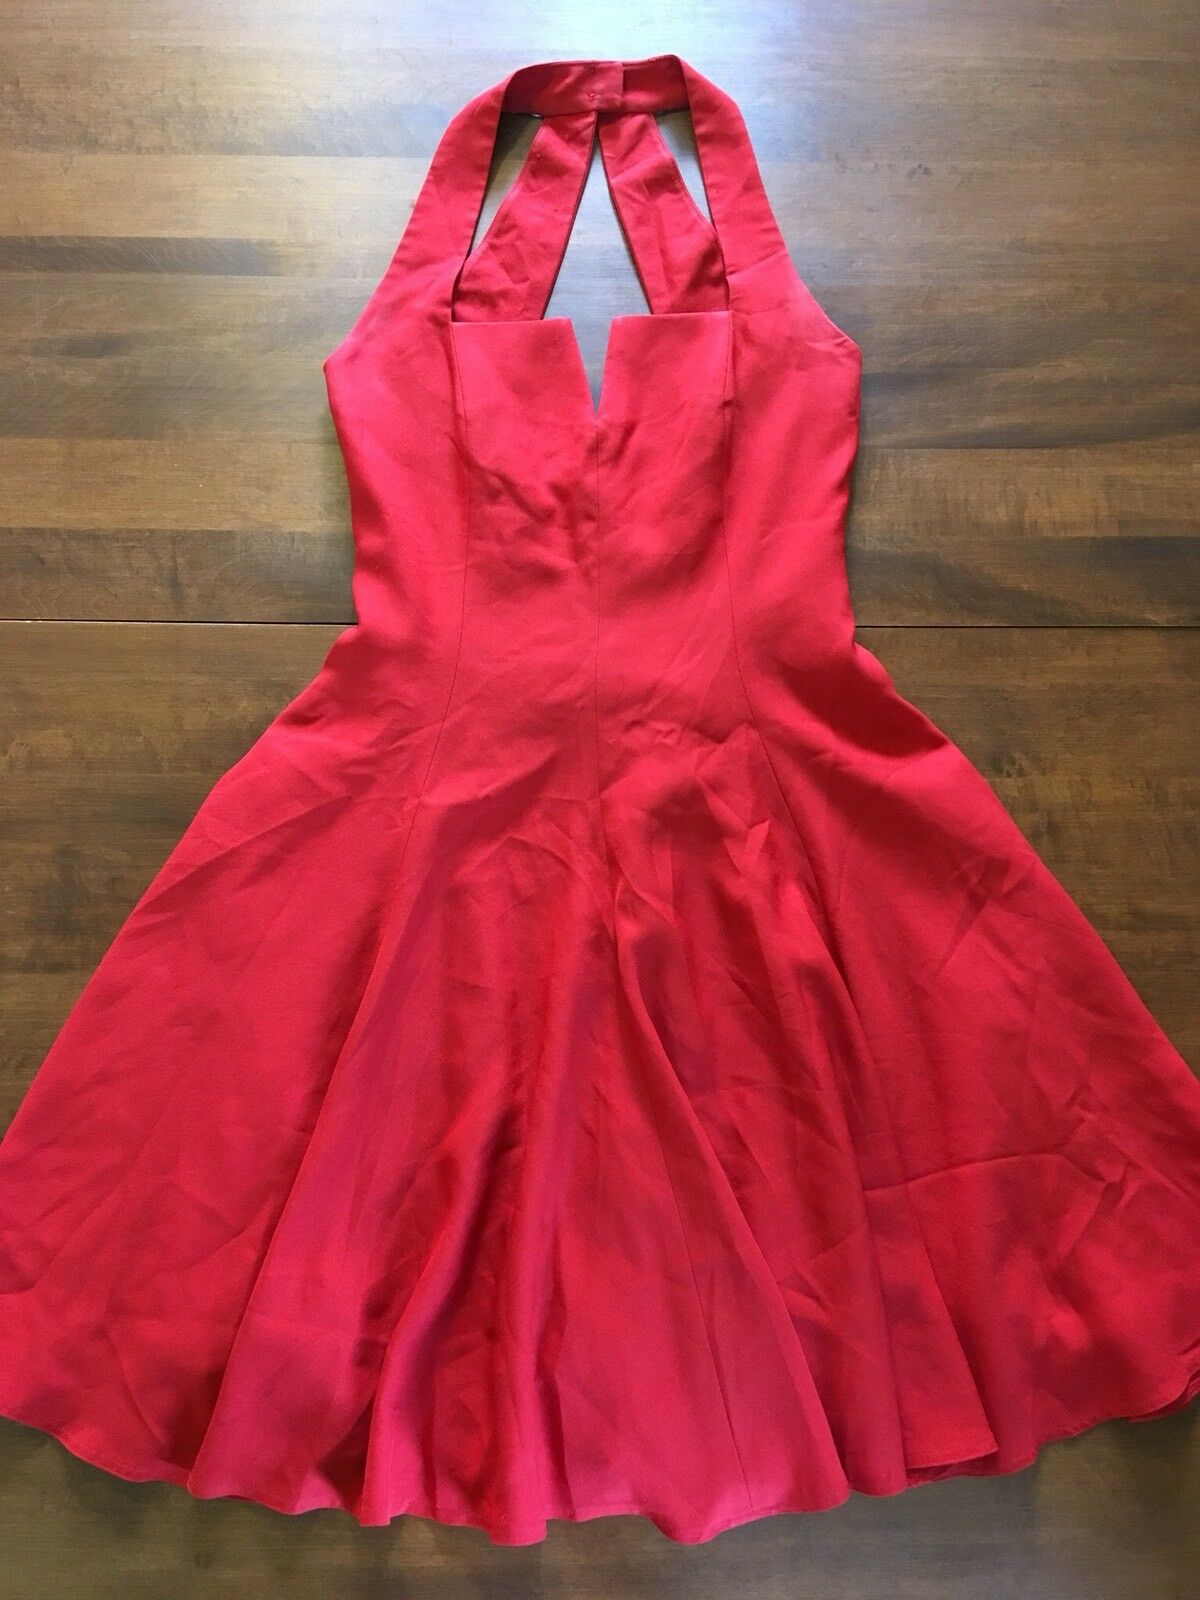 Vintage AJ Bari Red Party Formal Prom 80s Halter Dress Fit Flare Sz 8